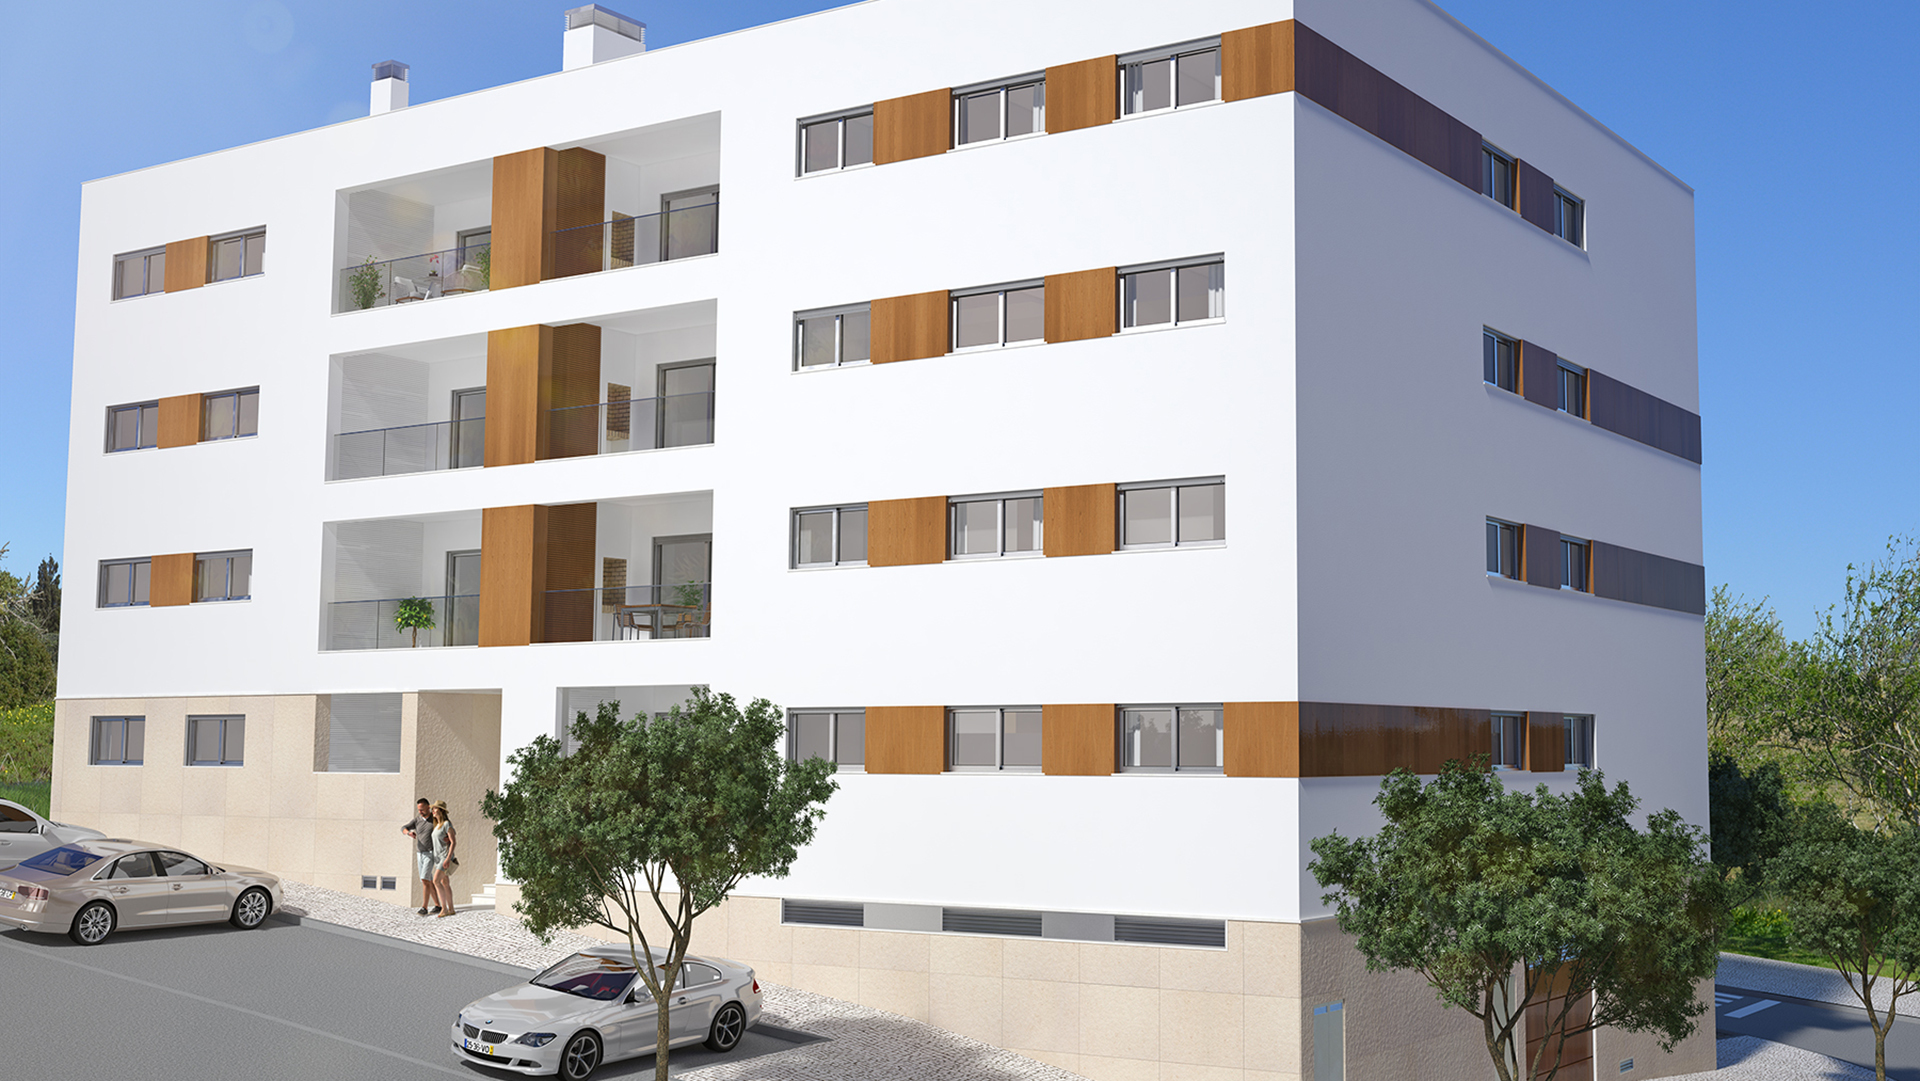 New 2 bedroom apartments with communal roof terrace and jacuzzis, central Lagos, West Algarve | LG1243 This brand-new four storey building is built to very high specifications. Located in the centre of town, within walking distance of all amenities and in an urbanization of recently constructed buildings. Features include a large roof terrace with two communal Jacuzzis and panoramic views of the city and marina. Ideal for use as a fulltime residence or rental property. Underground boxed garages and lockable storage room.